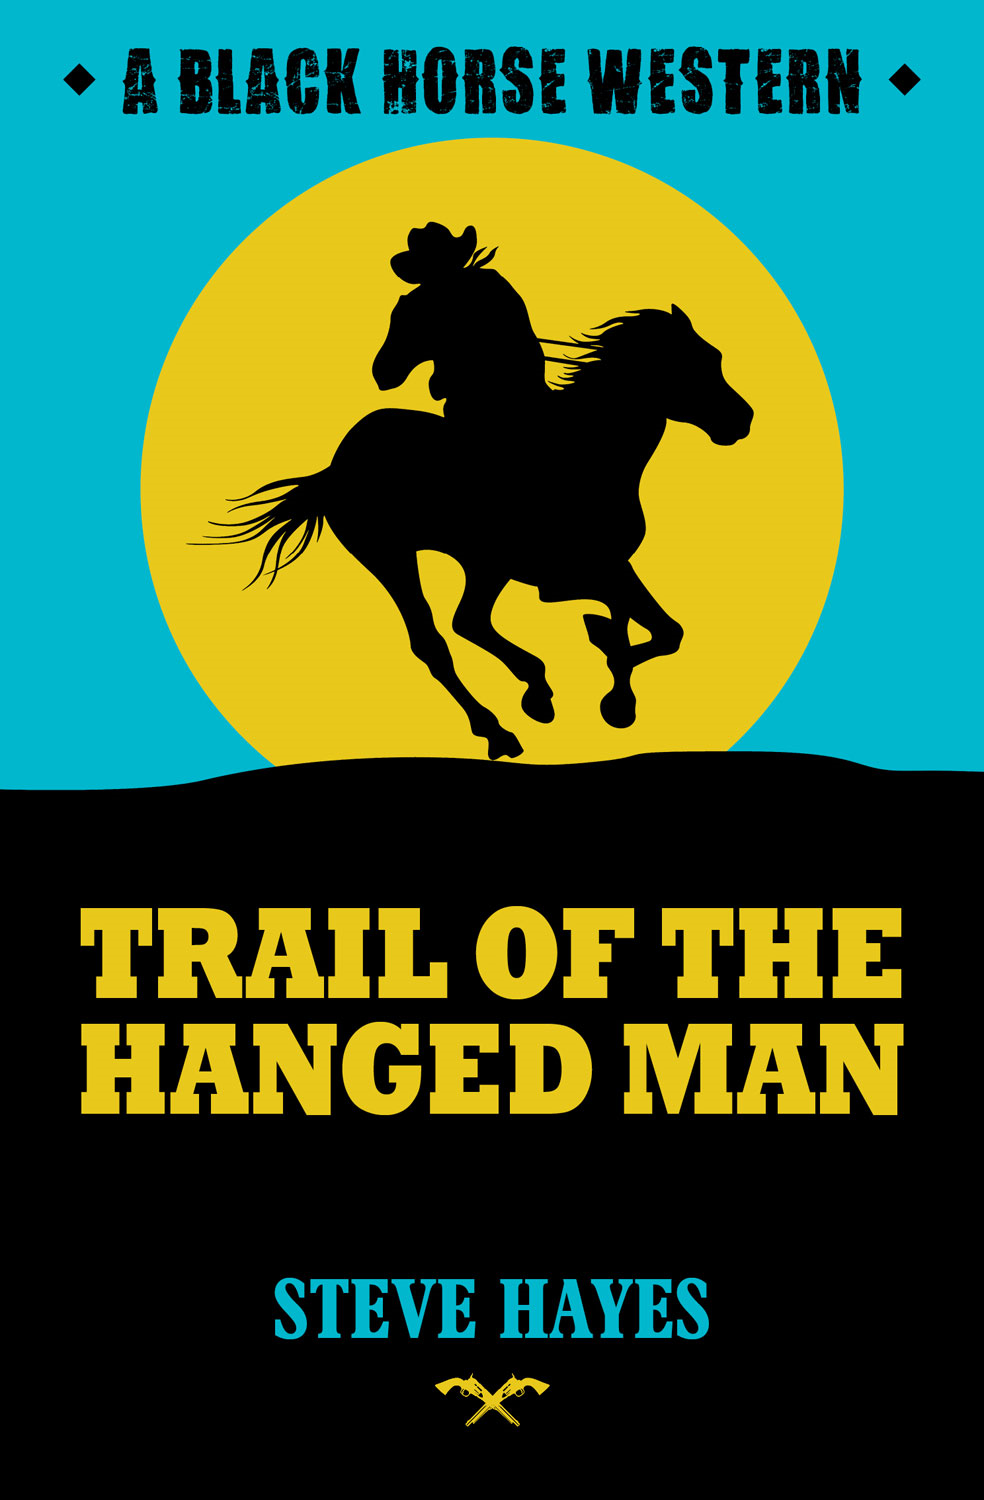 Trail of the Hanged Man